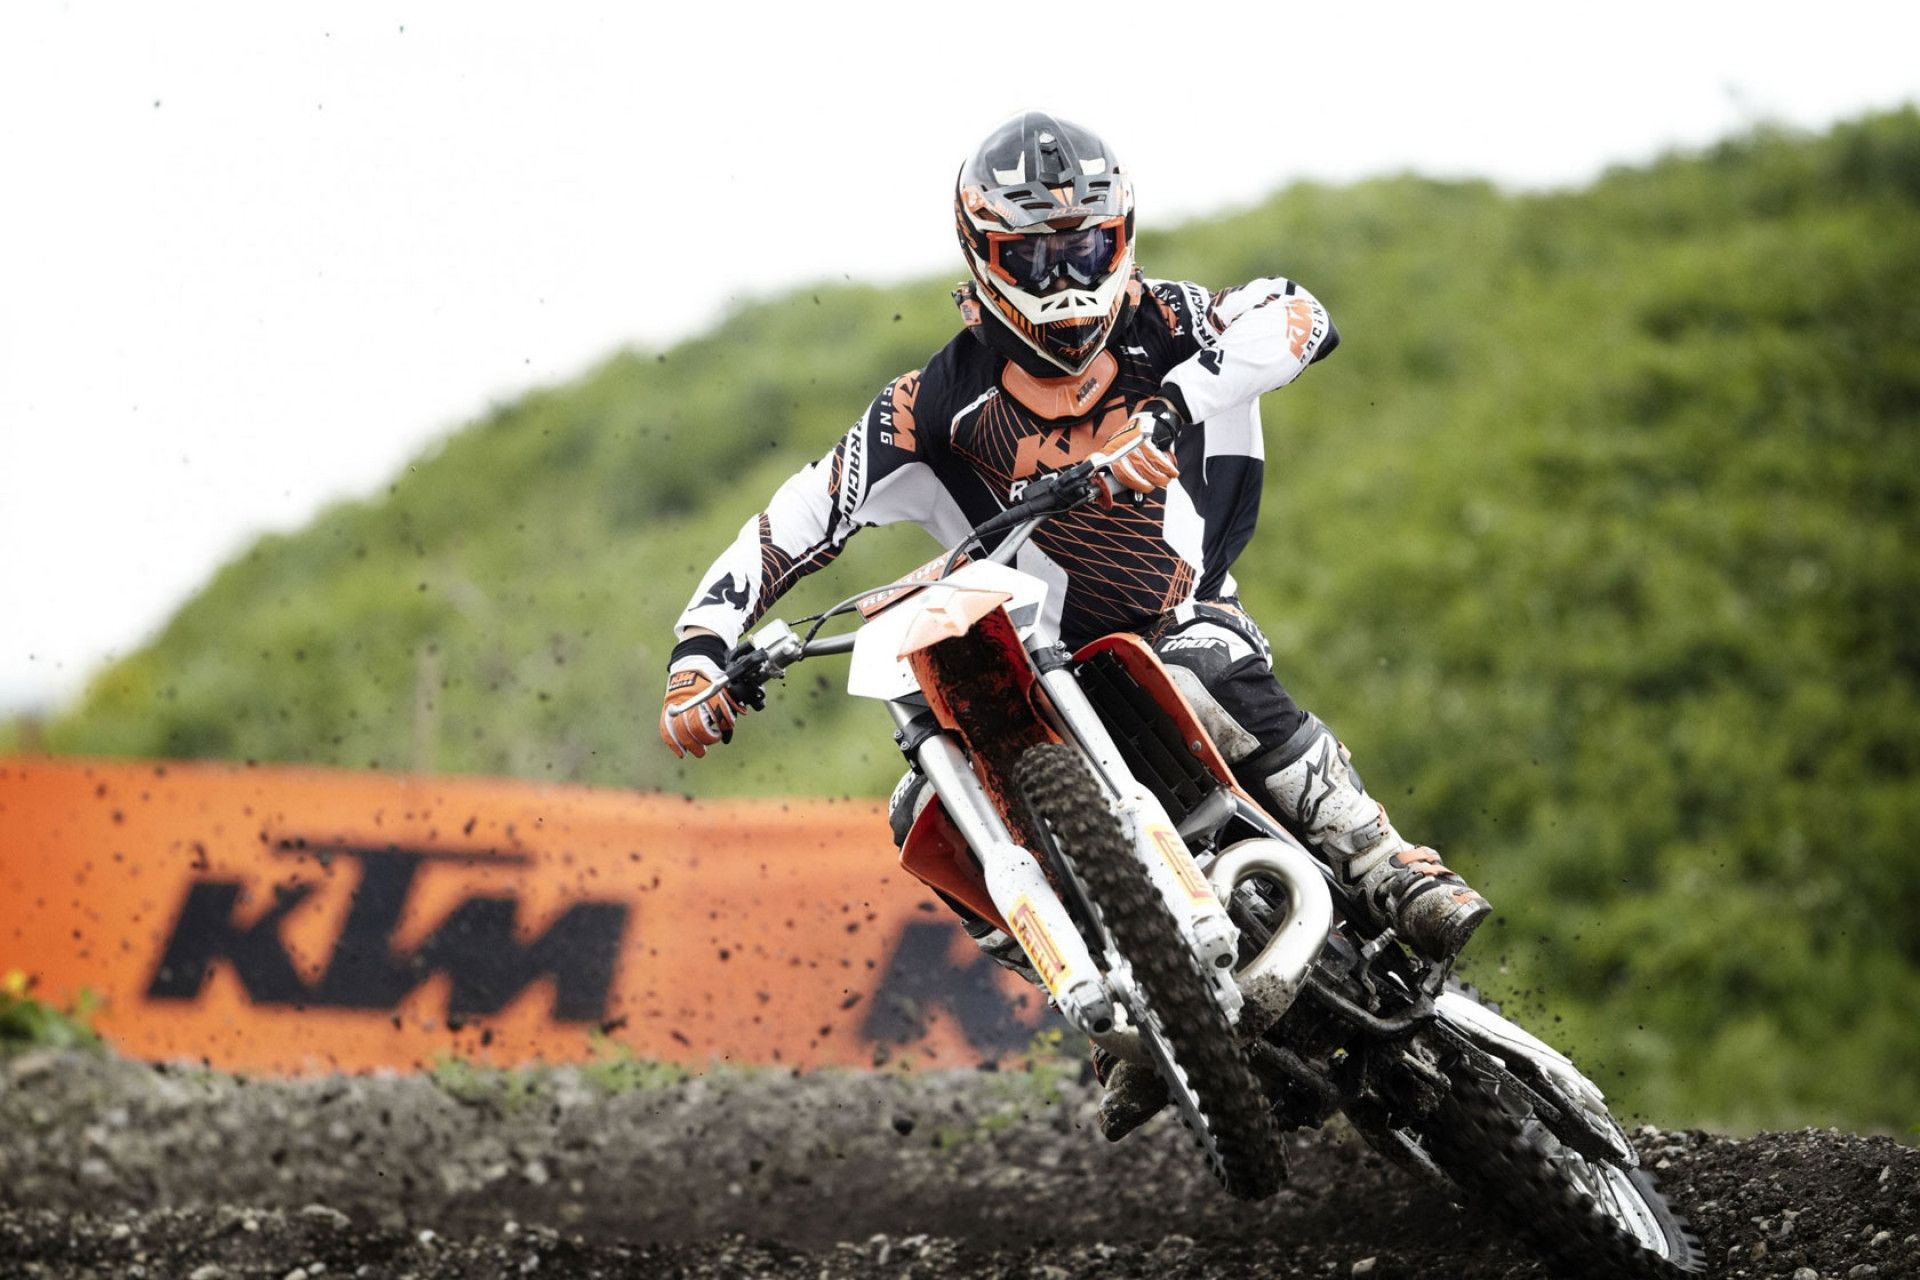 wallpaper.wiki-Motocross-Ktm-Photo-Free-Download-PIC-WPE007192